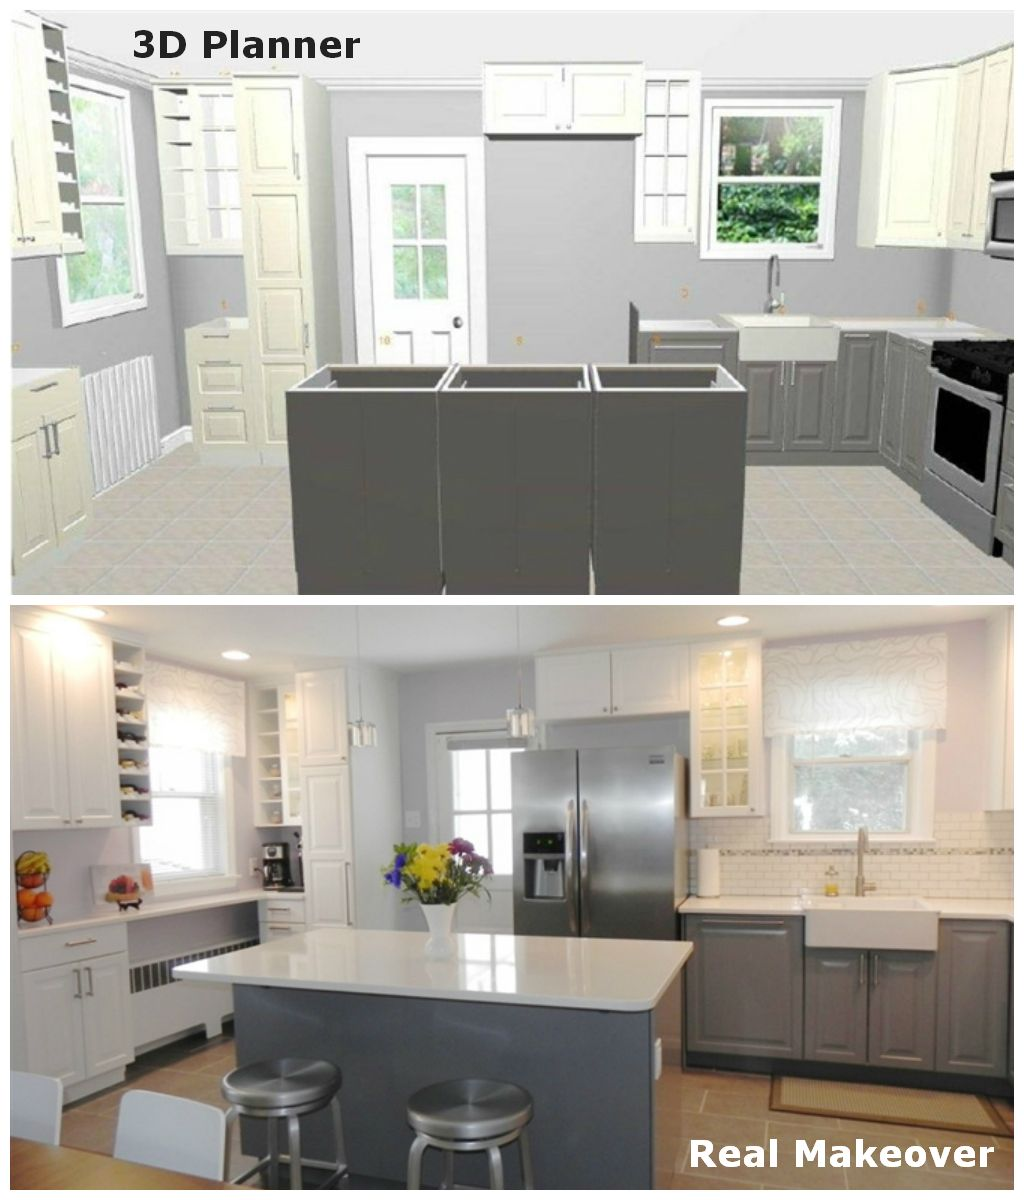 Ikea Kuche Planner At My Real Dream Kitchen Before After Kitchen Pinterest